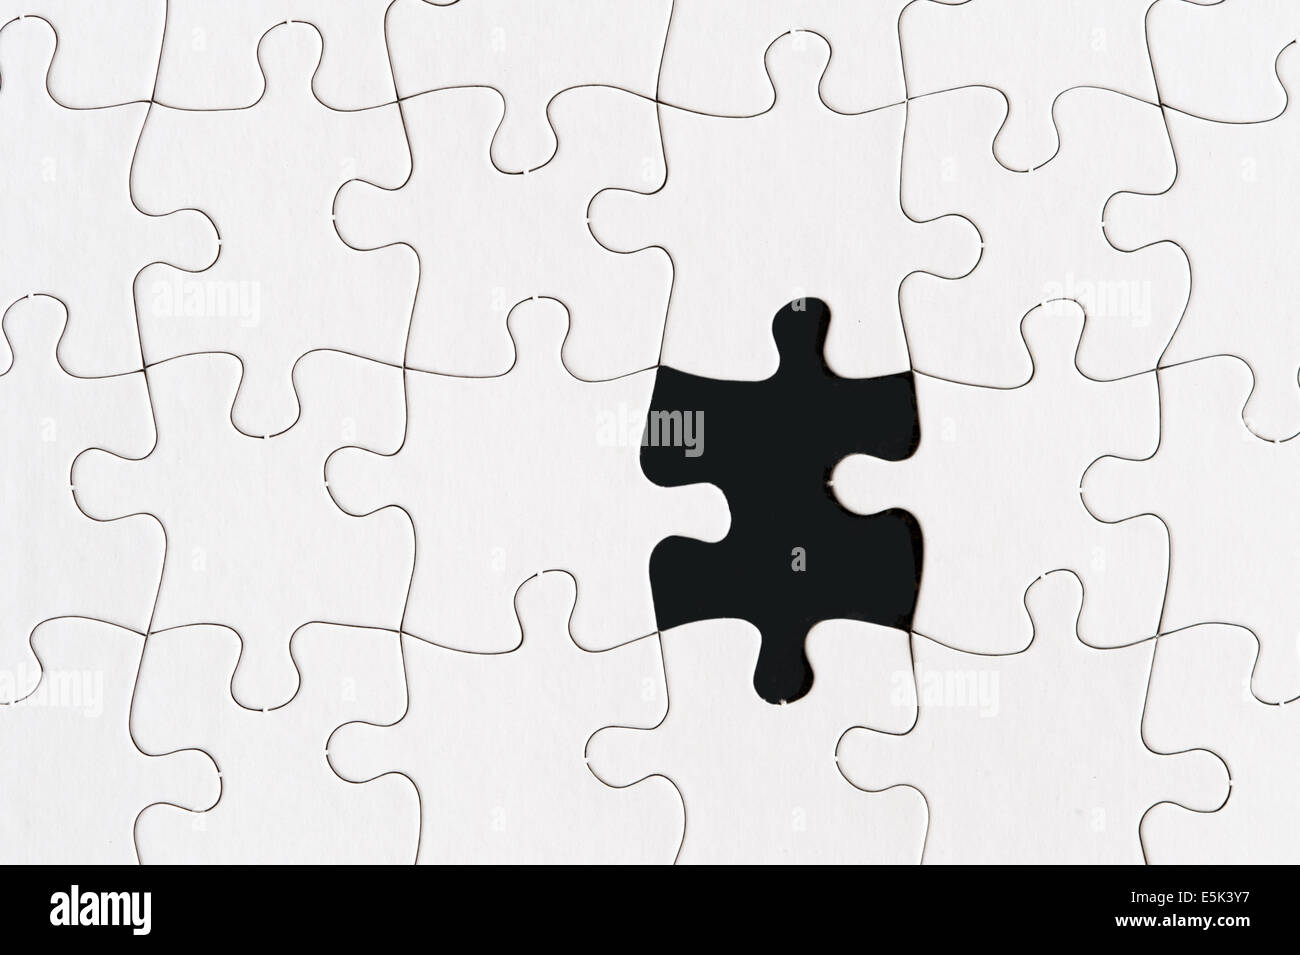 blank jigsaw puzzle with one missing piece - Stock Image